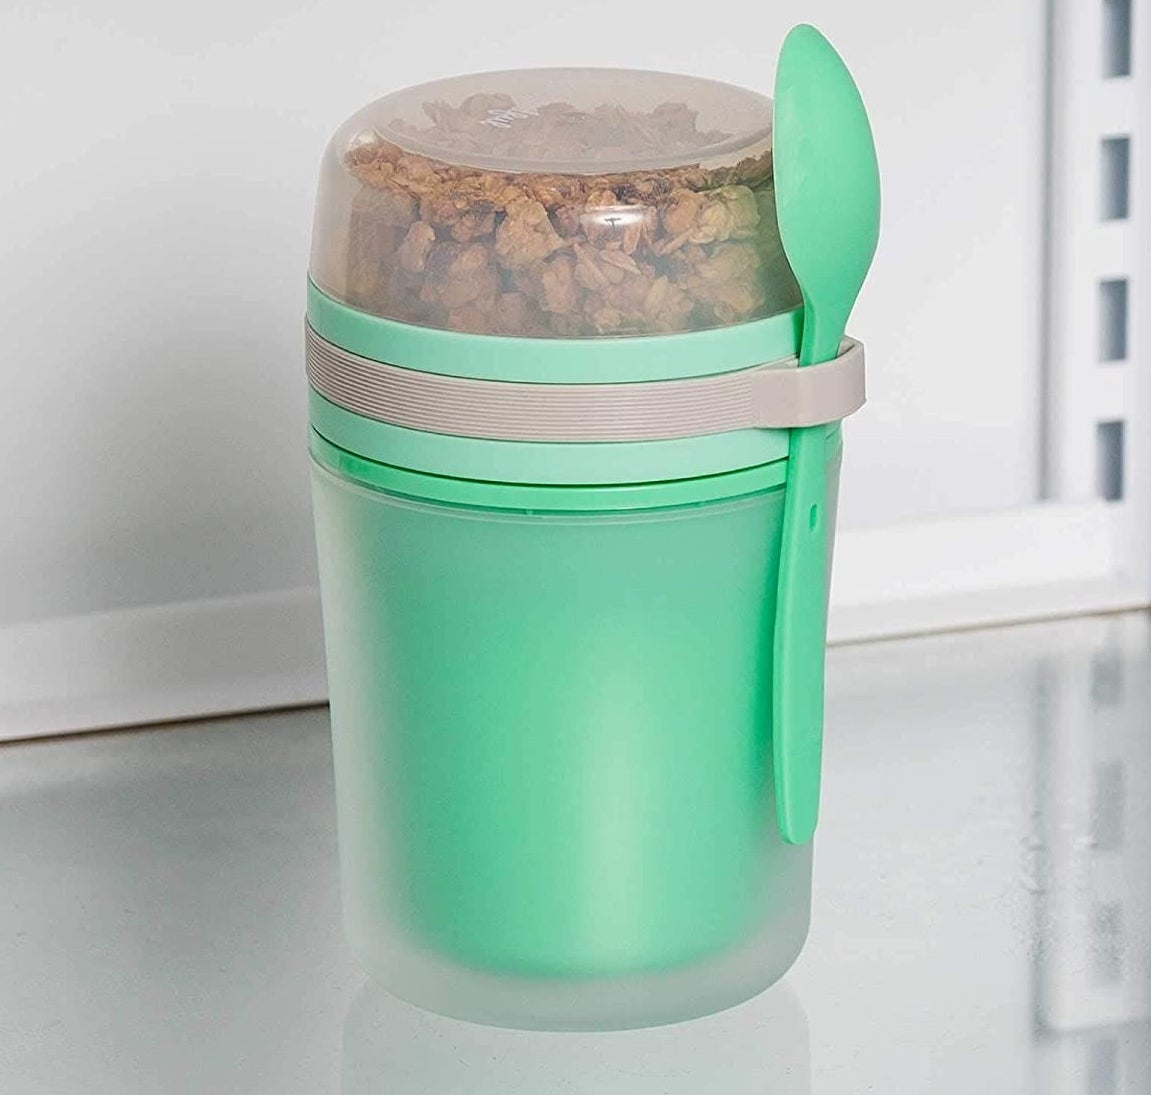 the green container with an attached green spoon and clear top compartment